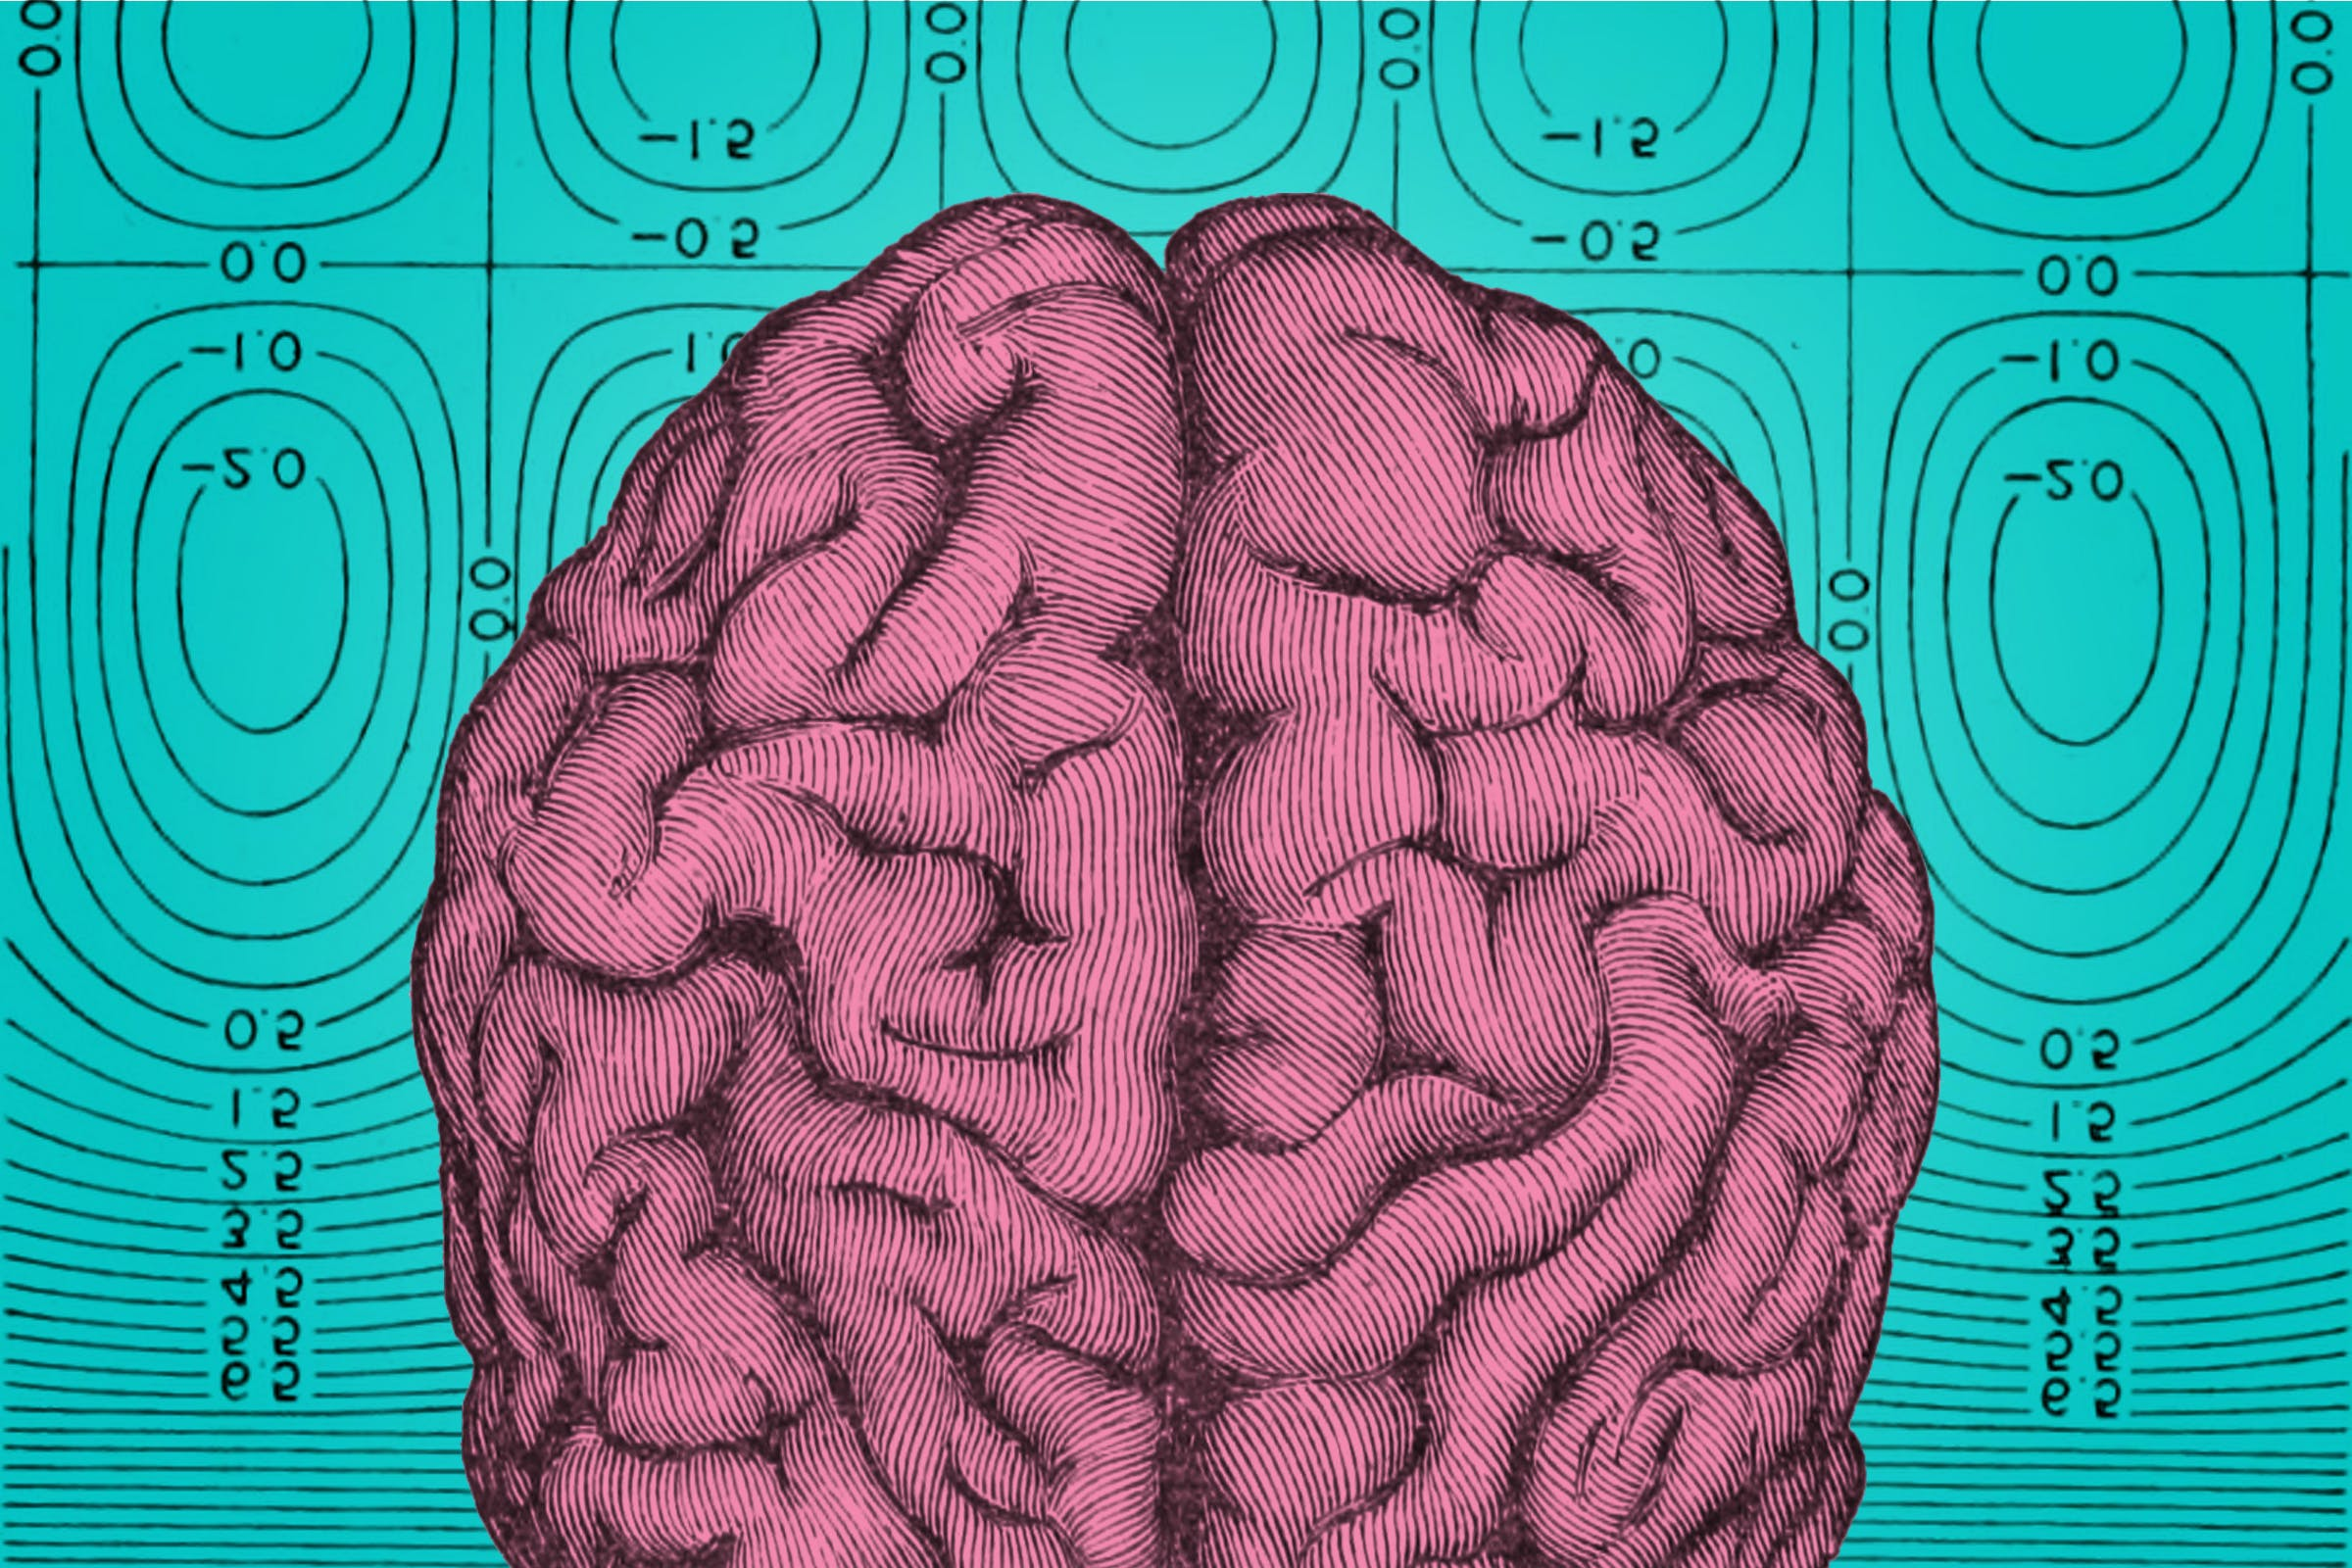 LATE is a newly defined brain disorder that mimics the symptoms of Alzheimer's disease